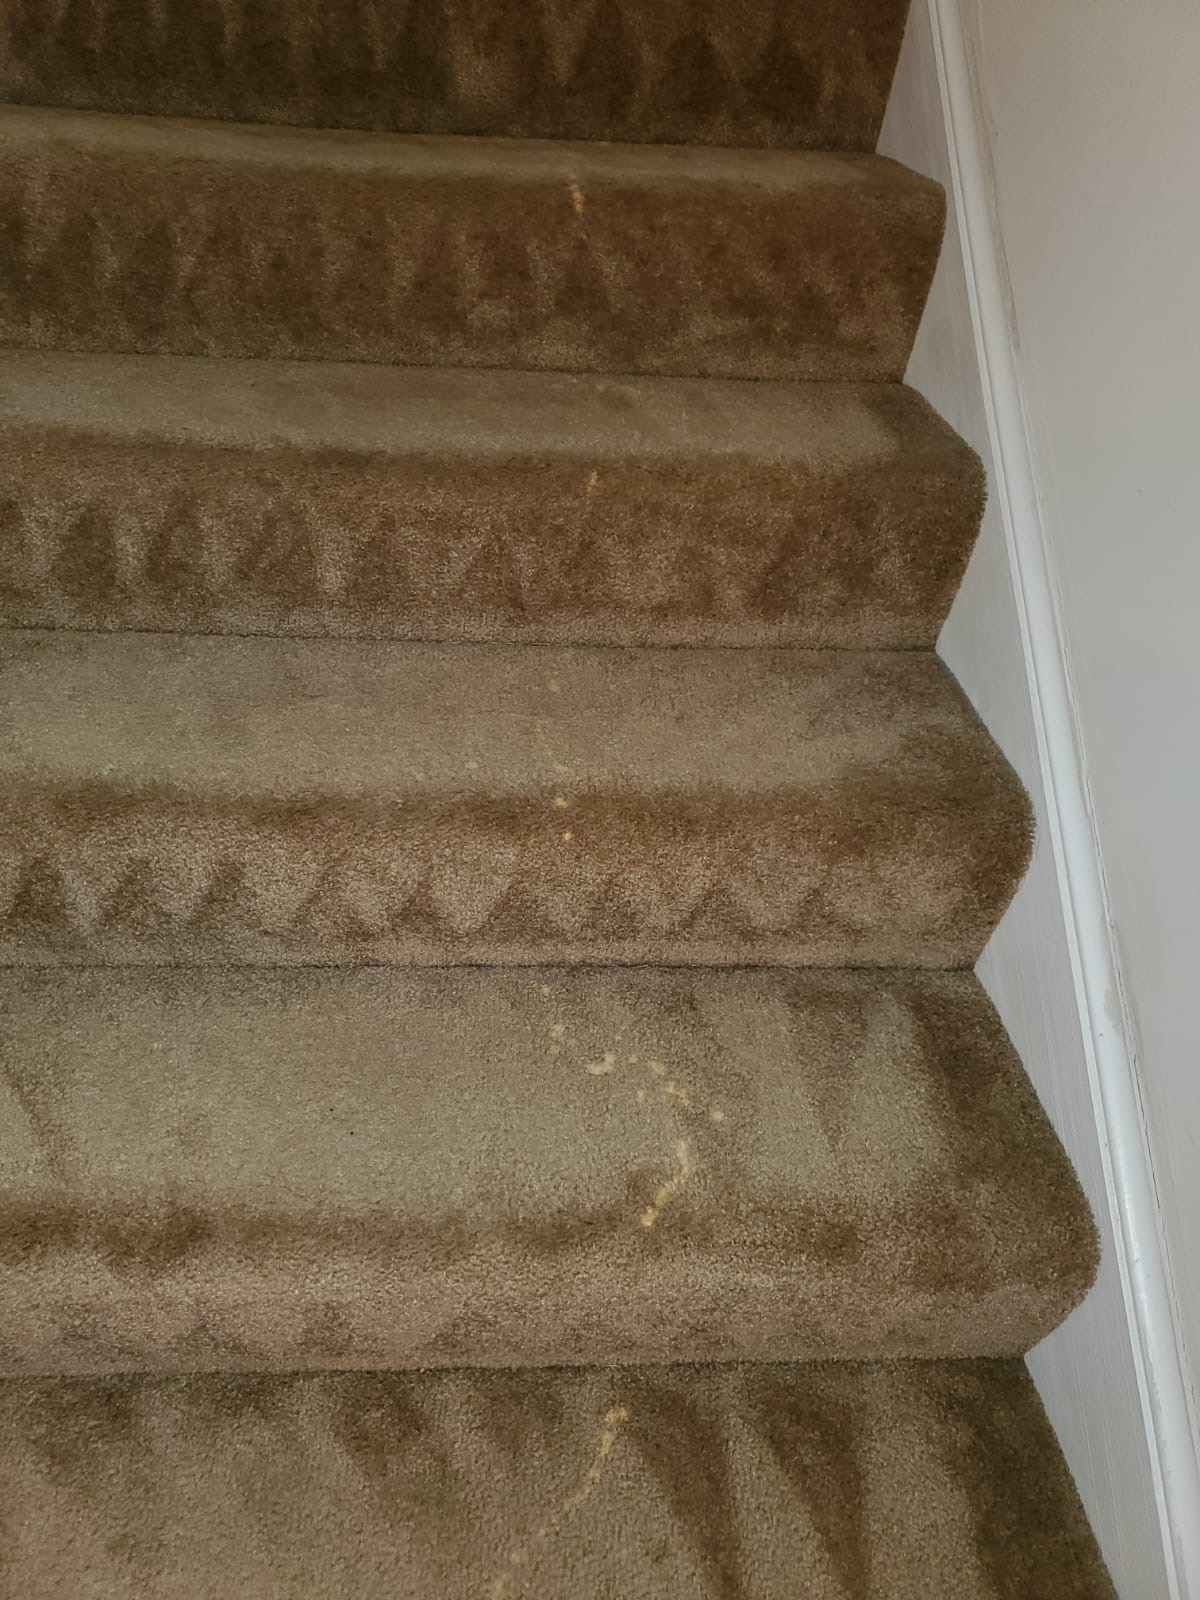 Bleach Spot Repair of Rental Property in Manassas, VA